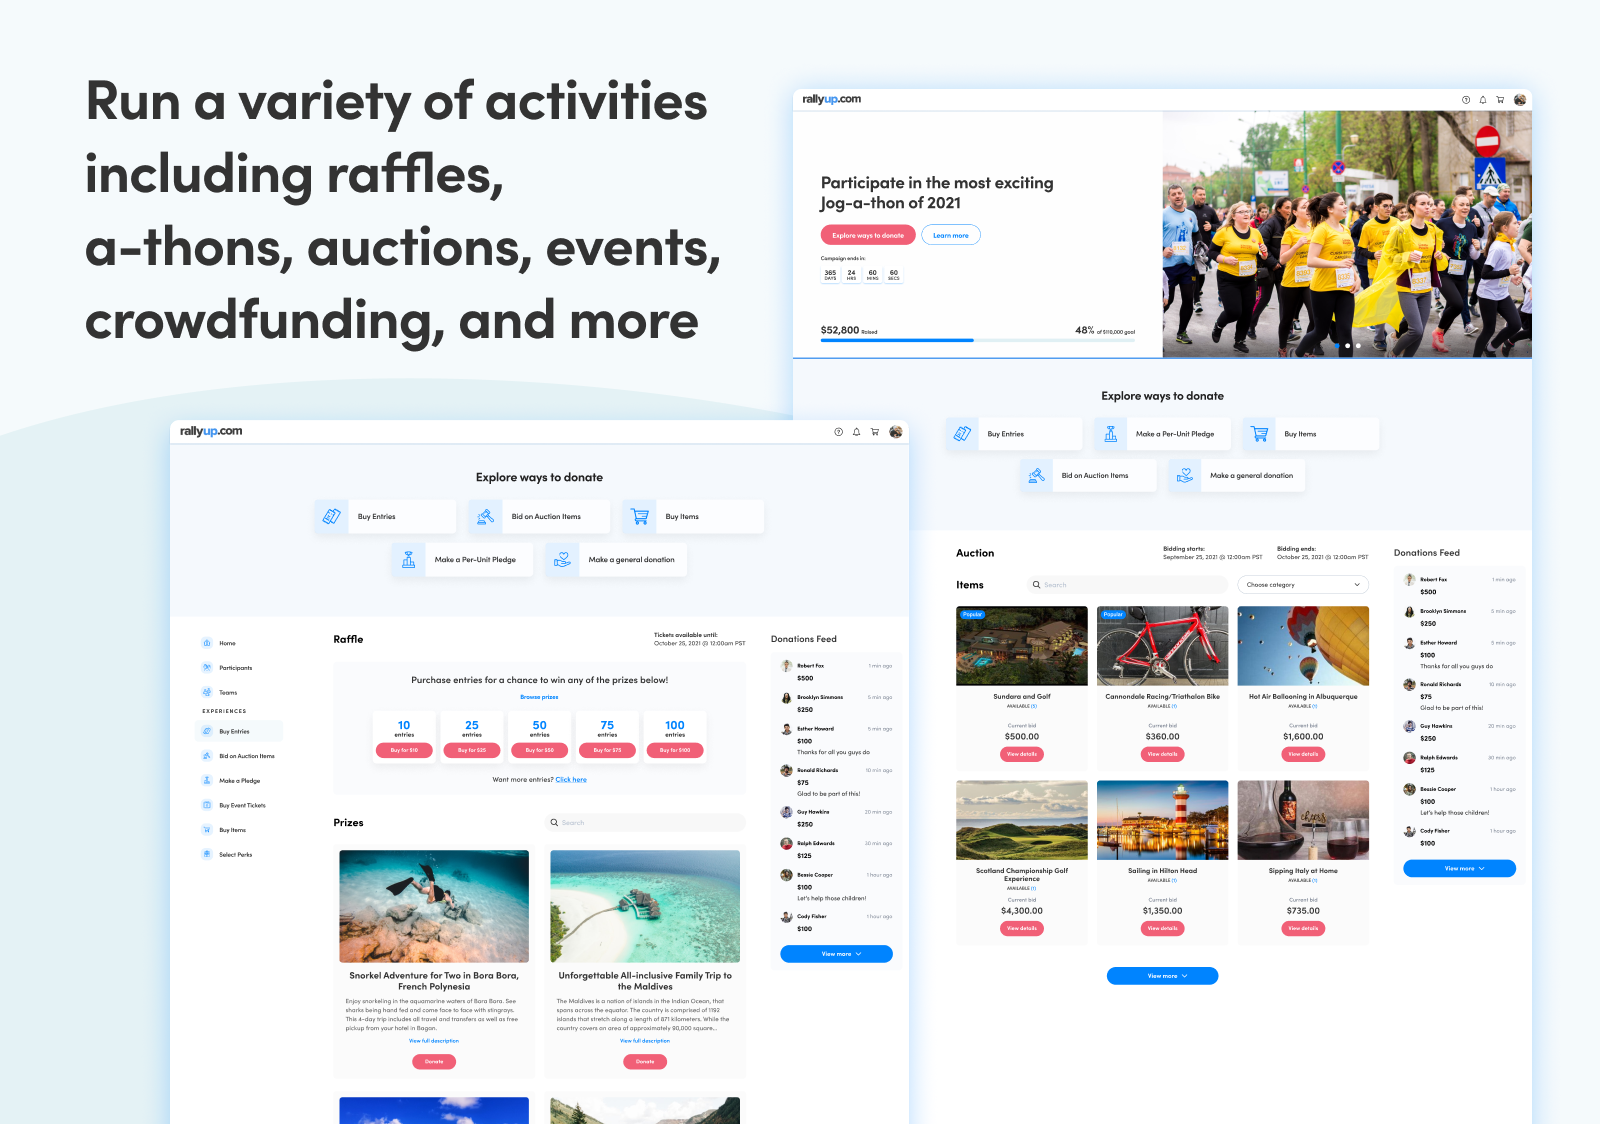 Run a variety of activities including raffles, a-thons, auctions, events, crowdfunding, and more